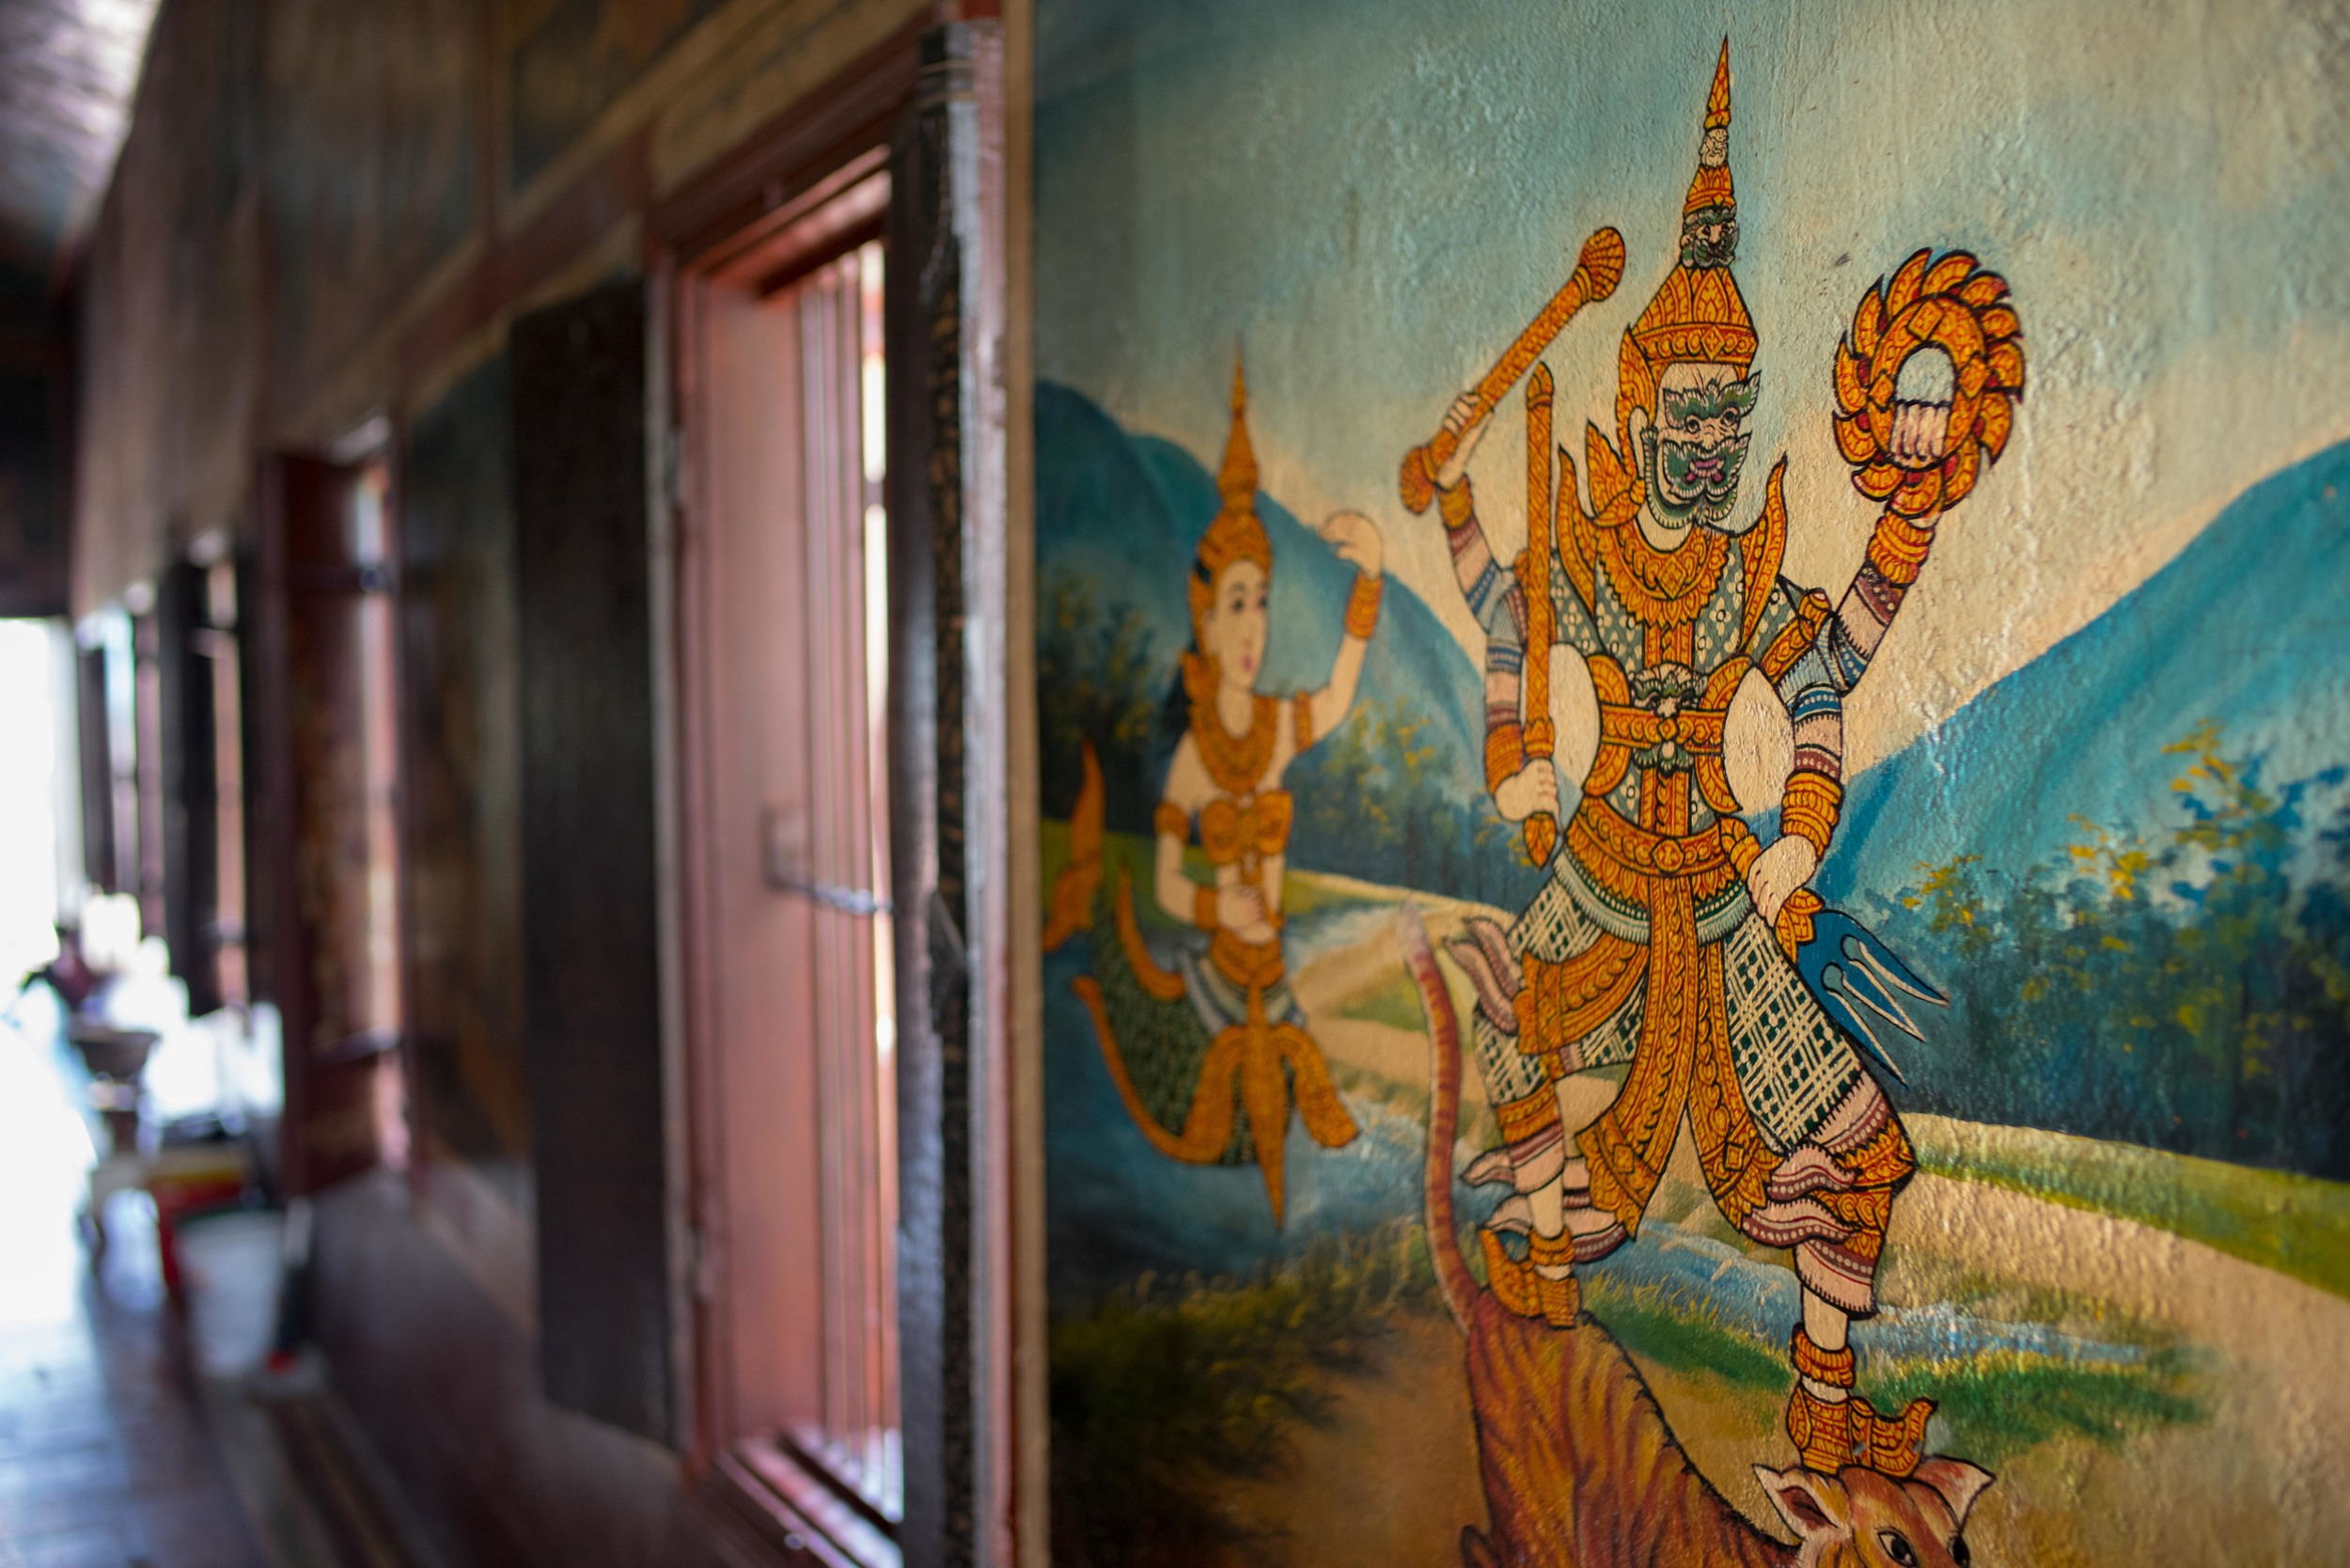 Mural at a buddhist temple